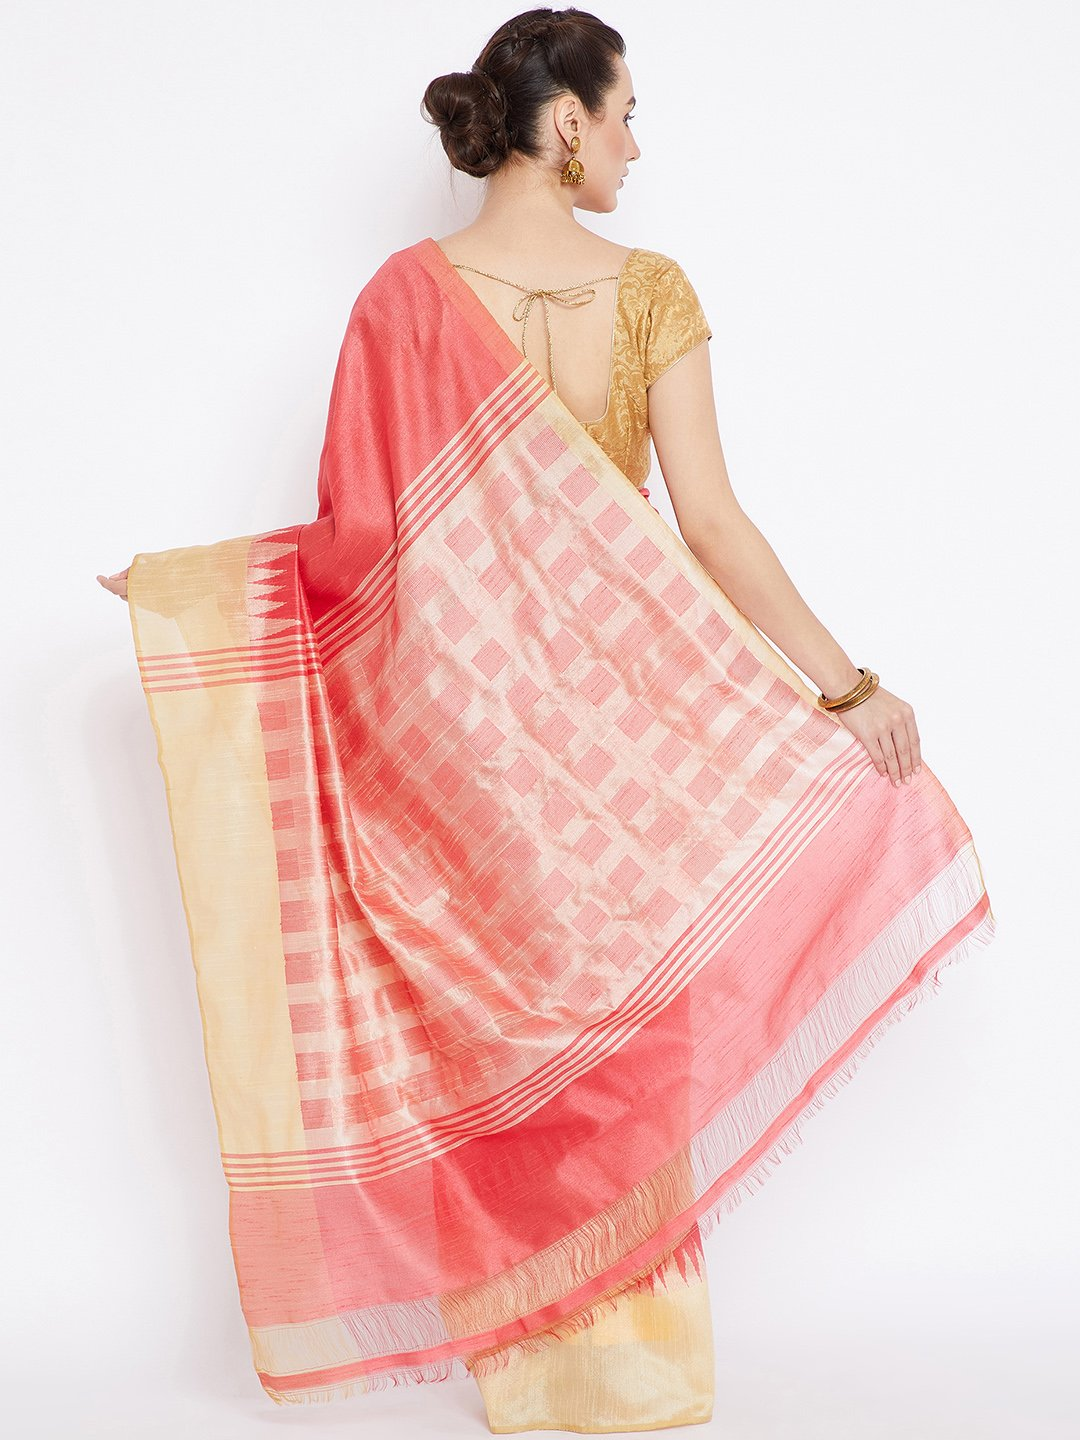 Peach and Gold-Coloured Tussar Woven Design Handloom Saree-Saree-Kalakari India-PRTUSA0008-Ahimsa Silk, Chattisgarh Kosa, Cruelty Free, Geographical Indication, Hand Woven, Sarees, Silk, Sustainable Fabrics, Traditional Weave, Tussar-[Linen,Ethnic,wear,Fashionista,Handloom,Handicraft,Indigo,blockprint,block,print,Cotton,Chanderi,Blue, latest,classy,party,bollywood,trendy,summer,style,traditional,formal,elegant,unique,style,hand,block,print, dabu,booti,gift,present,glamorous,affordable,collectibl